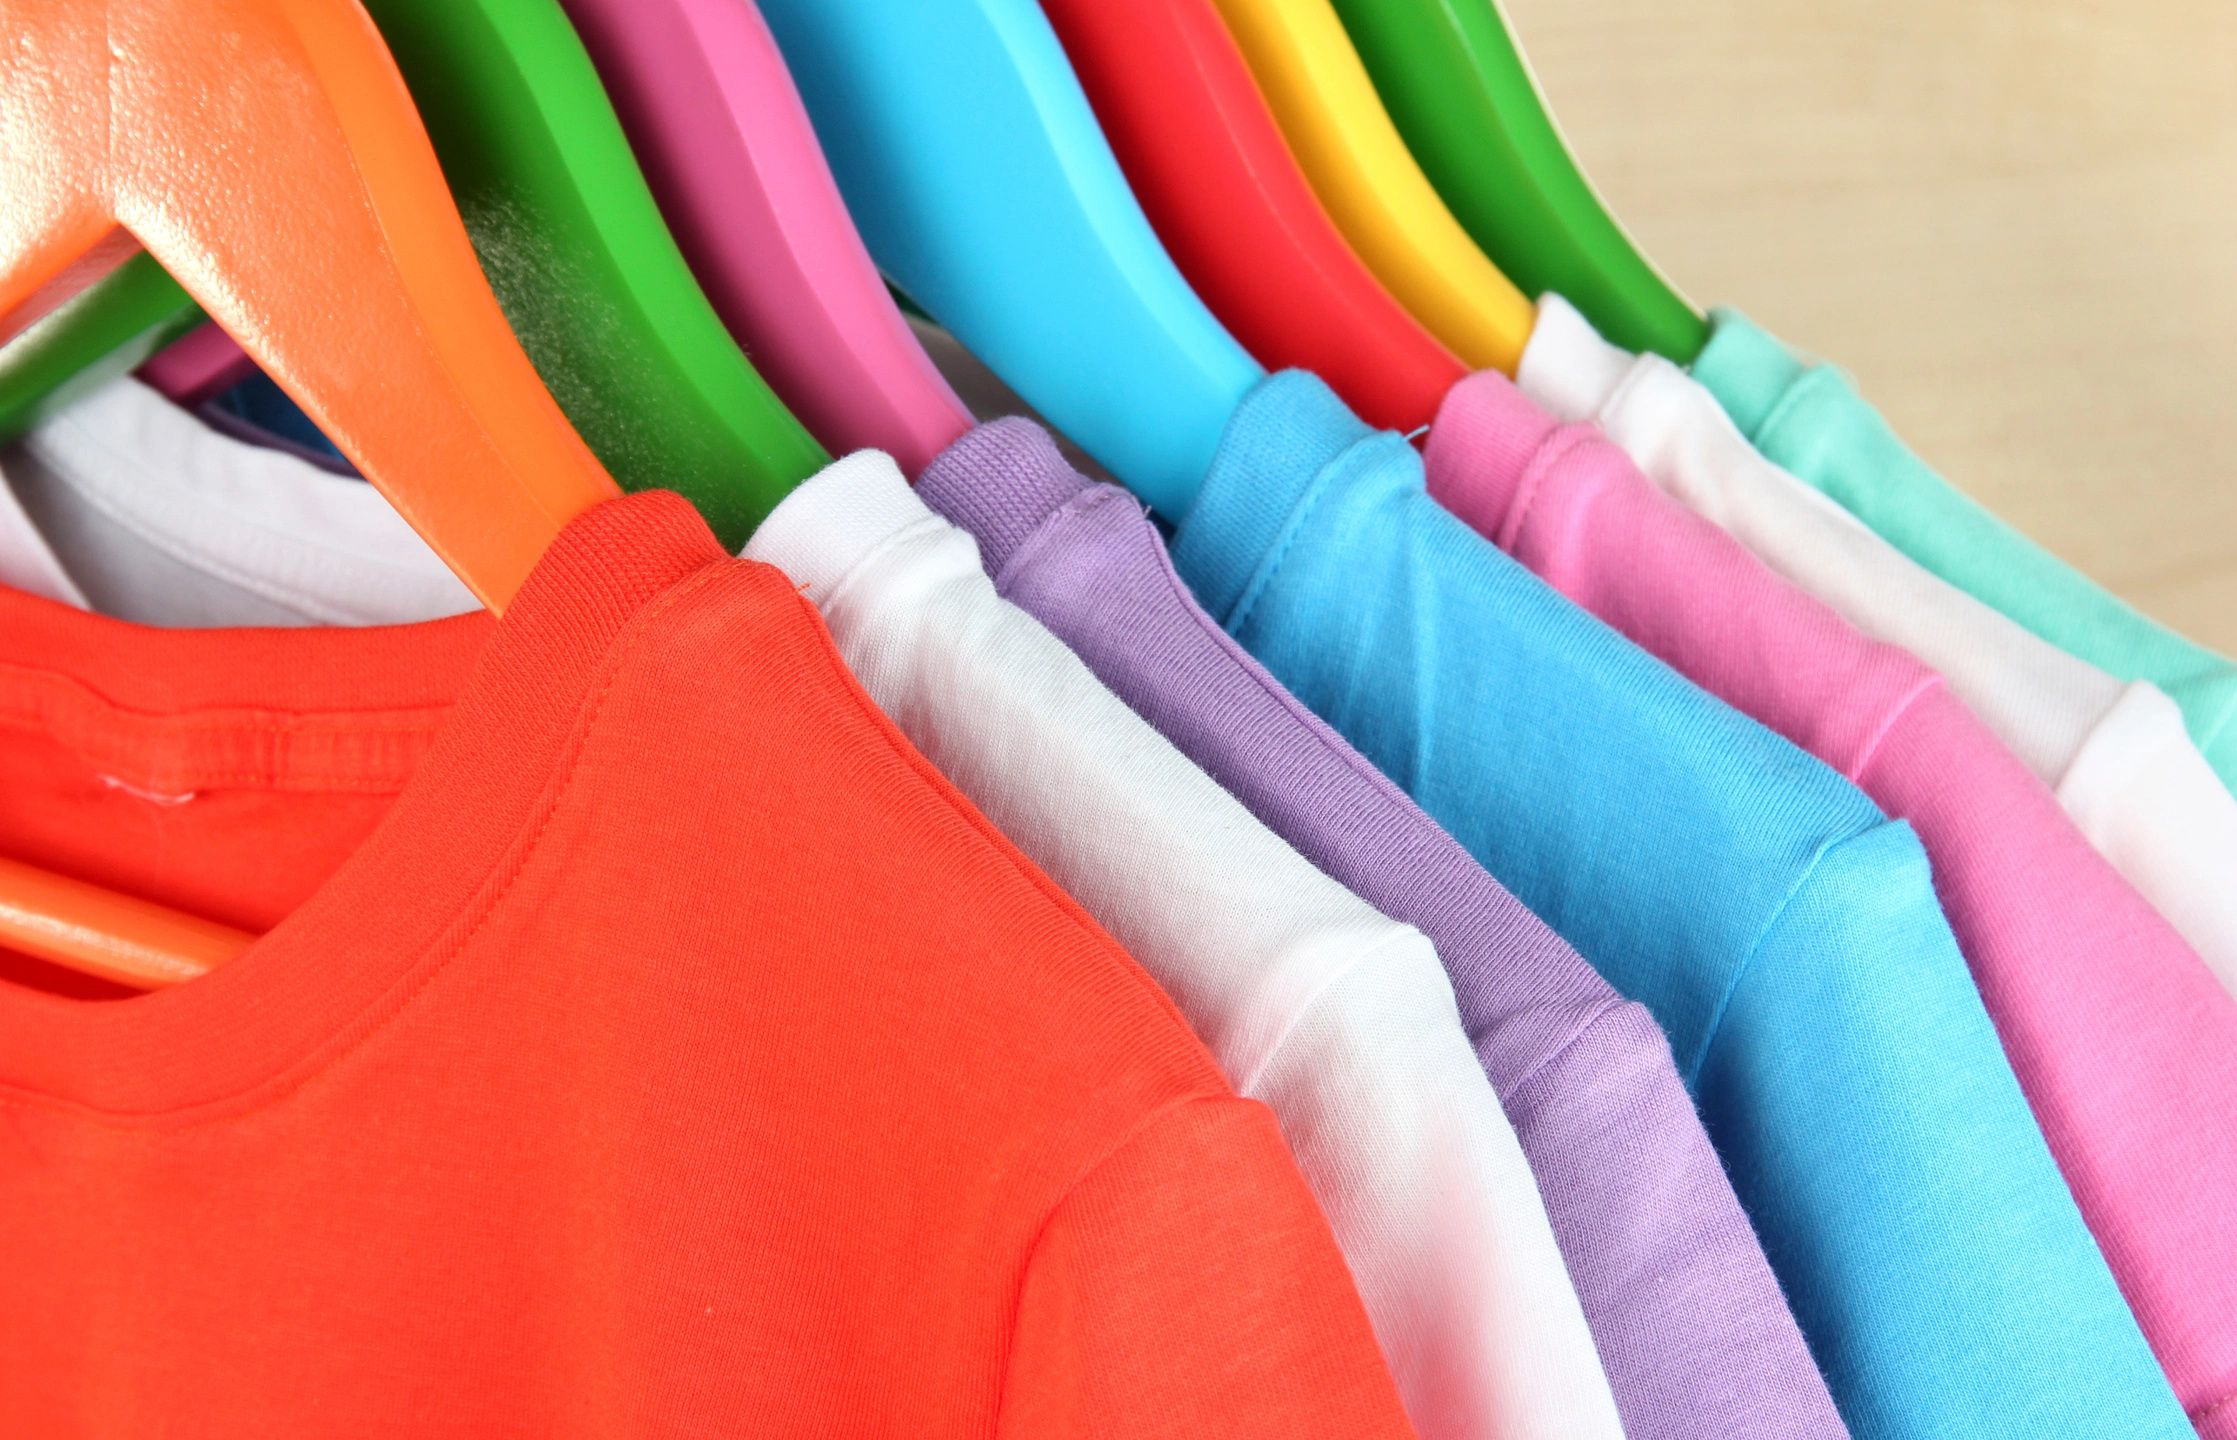 Donate Your Old Tee Shirts For A Good Cause